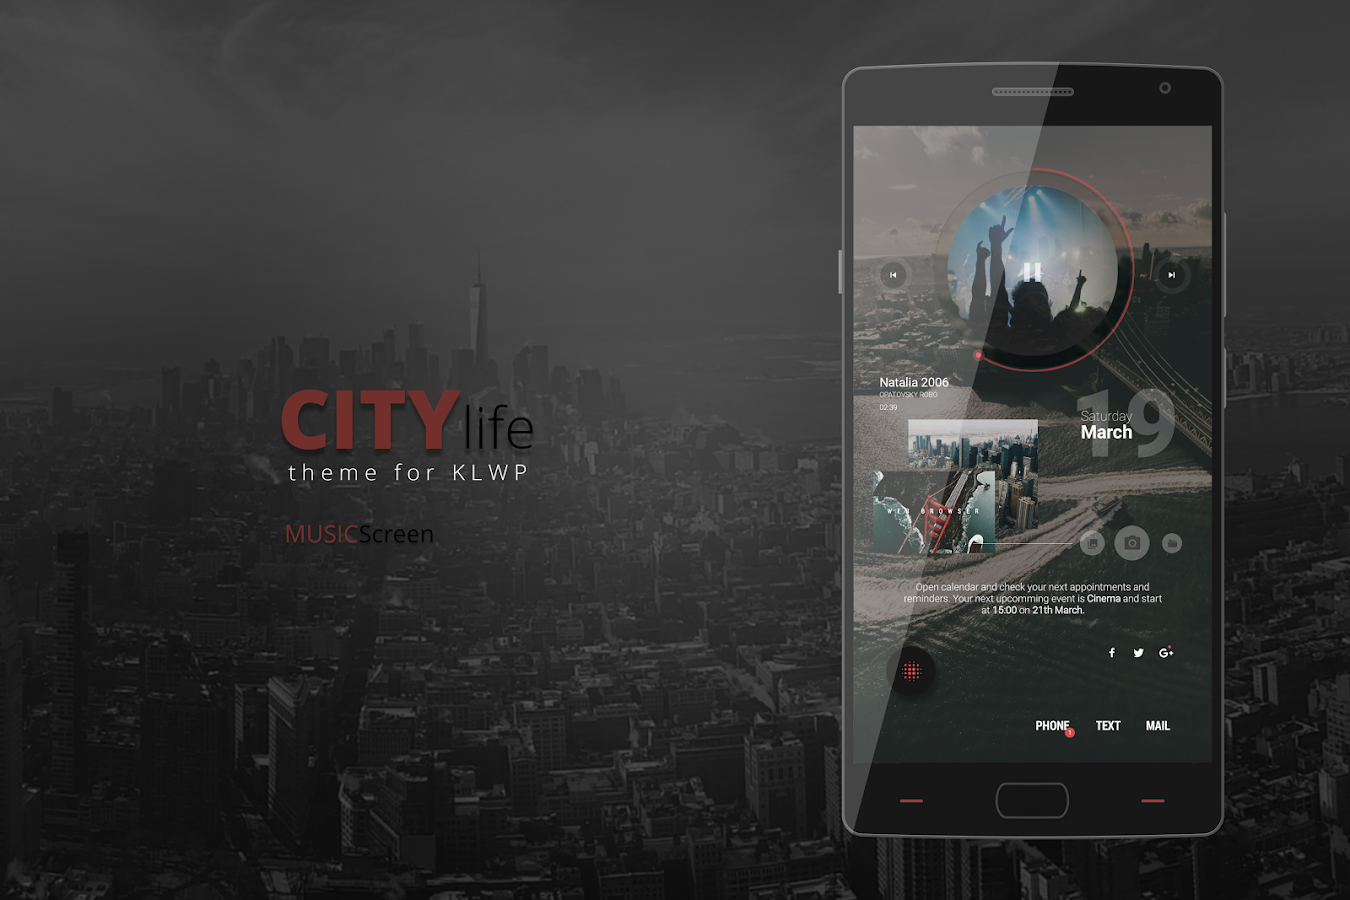 City Life Theme for KLWP Screenshot 3